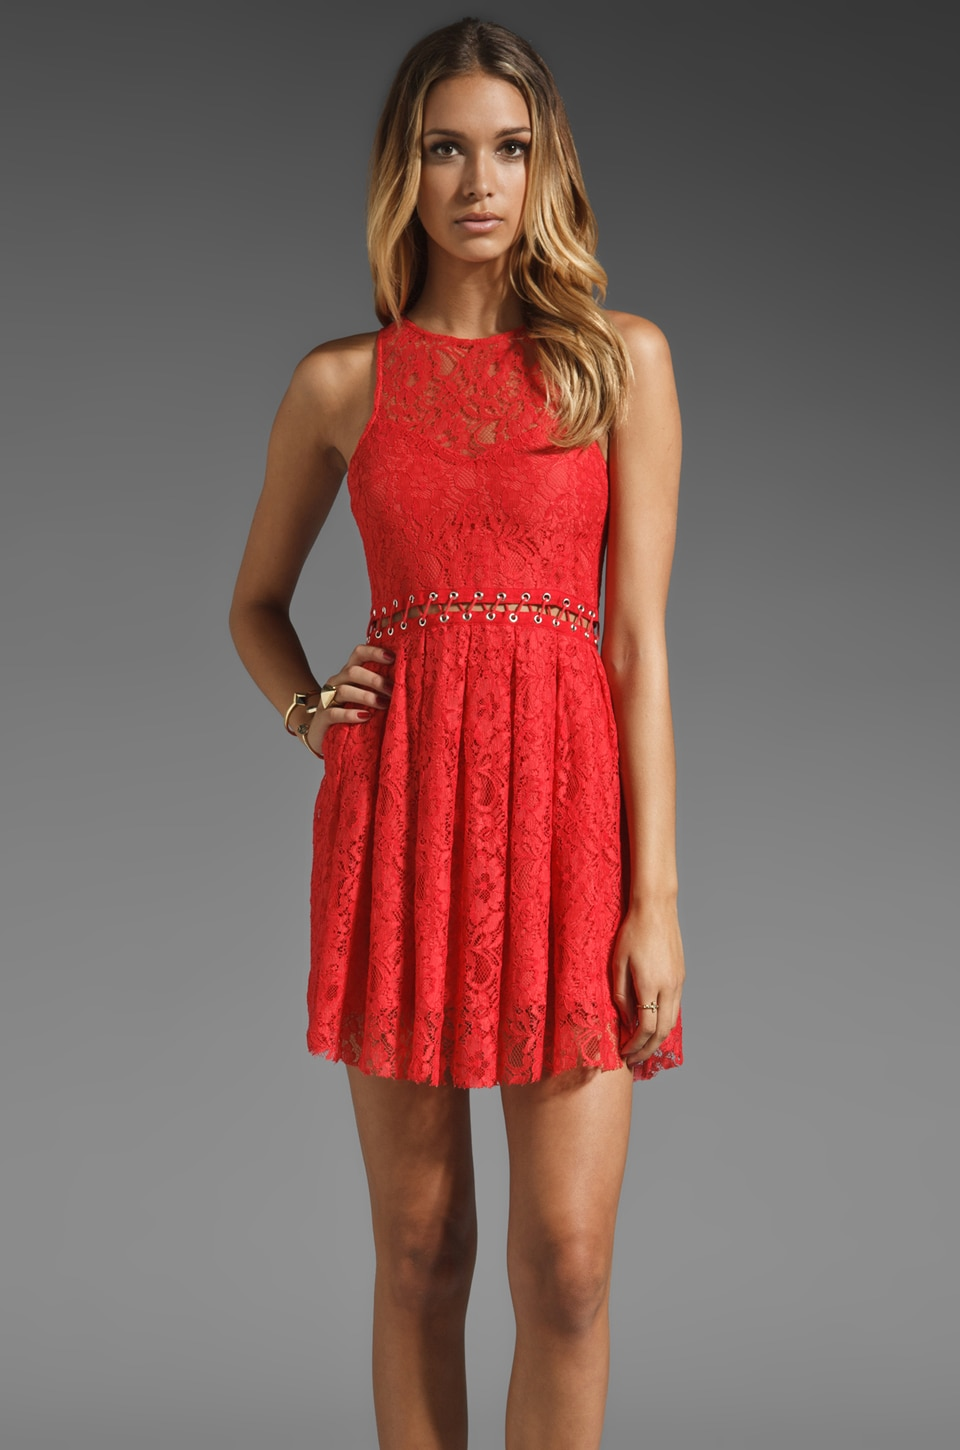 STYLESTALKER Love Me Do Lace Up Dress in Coral Red